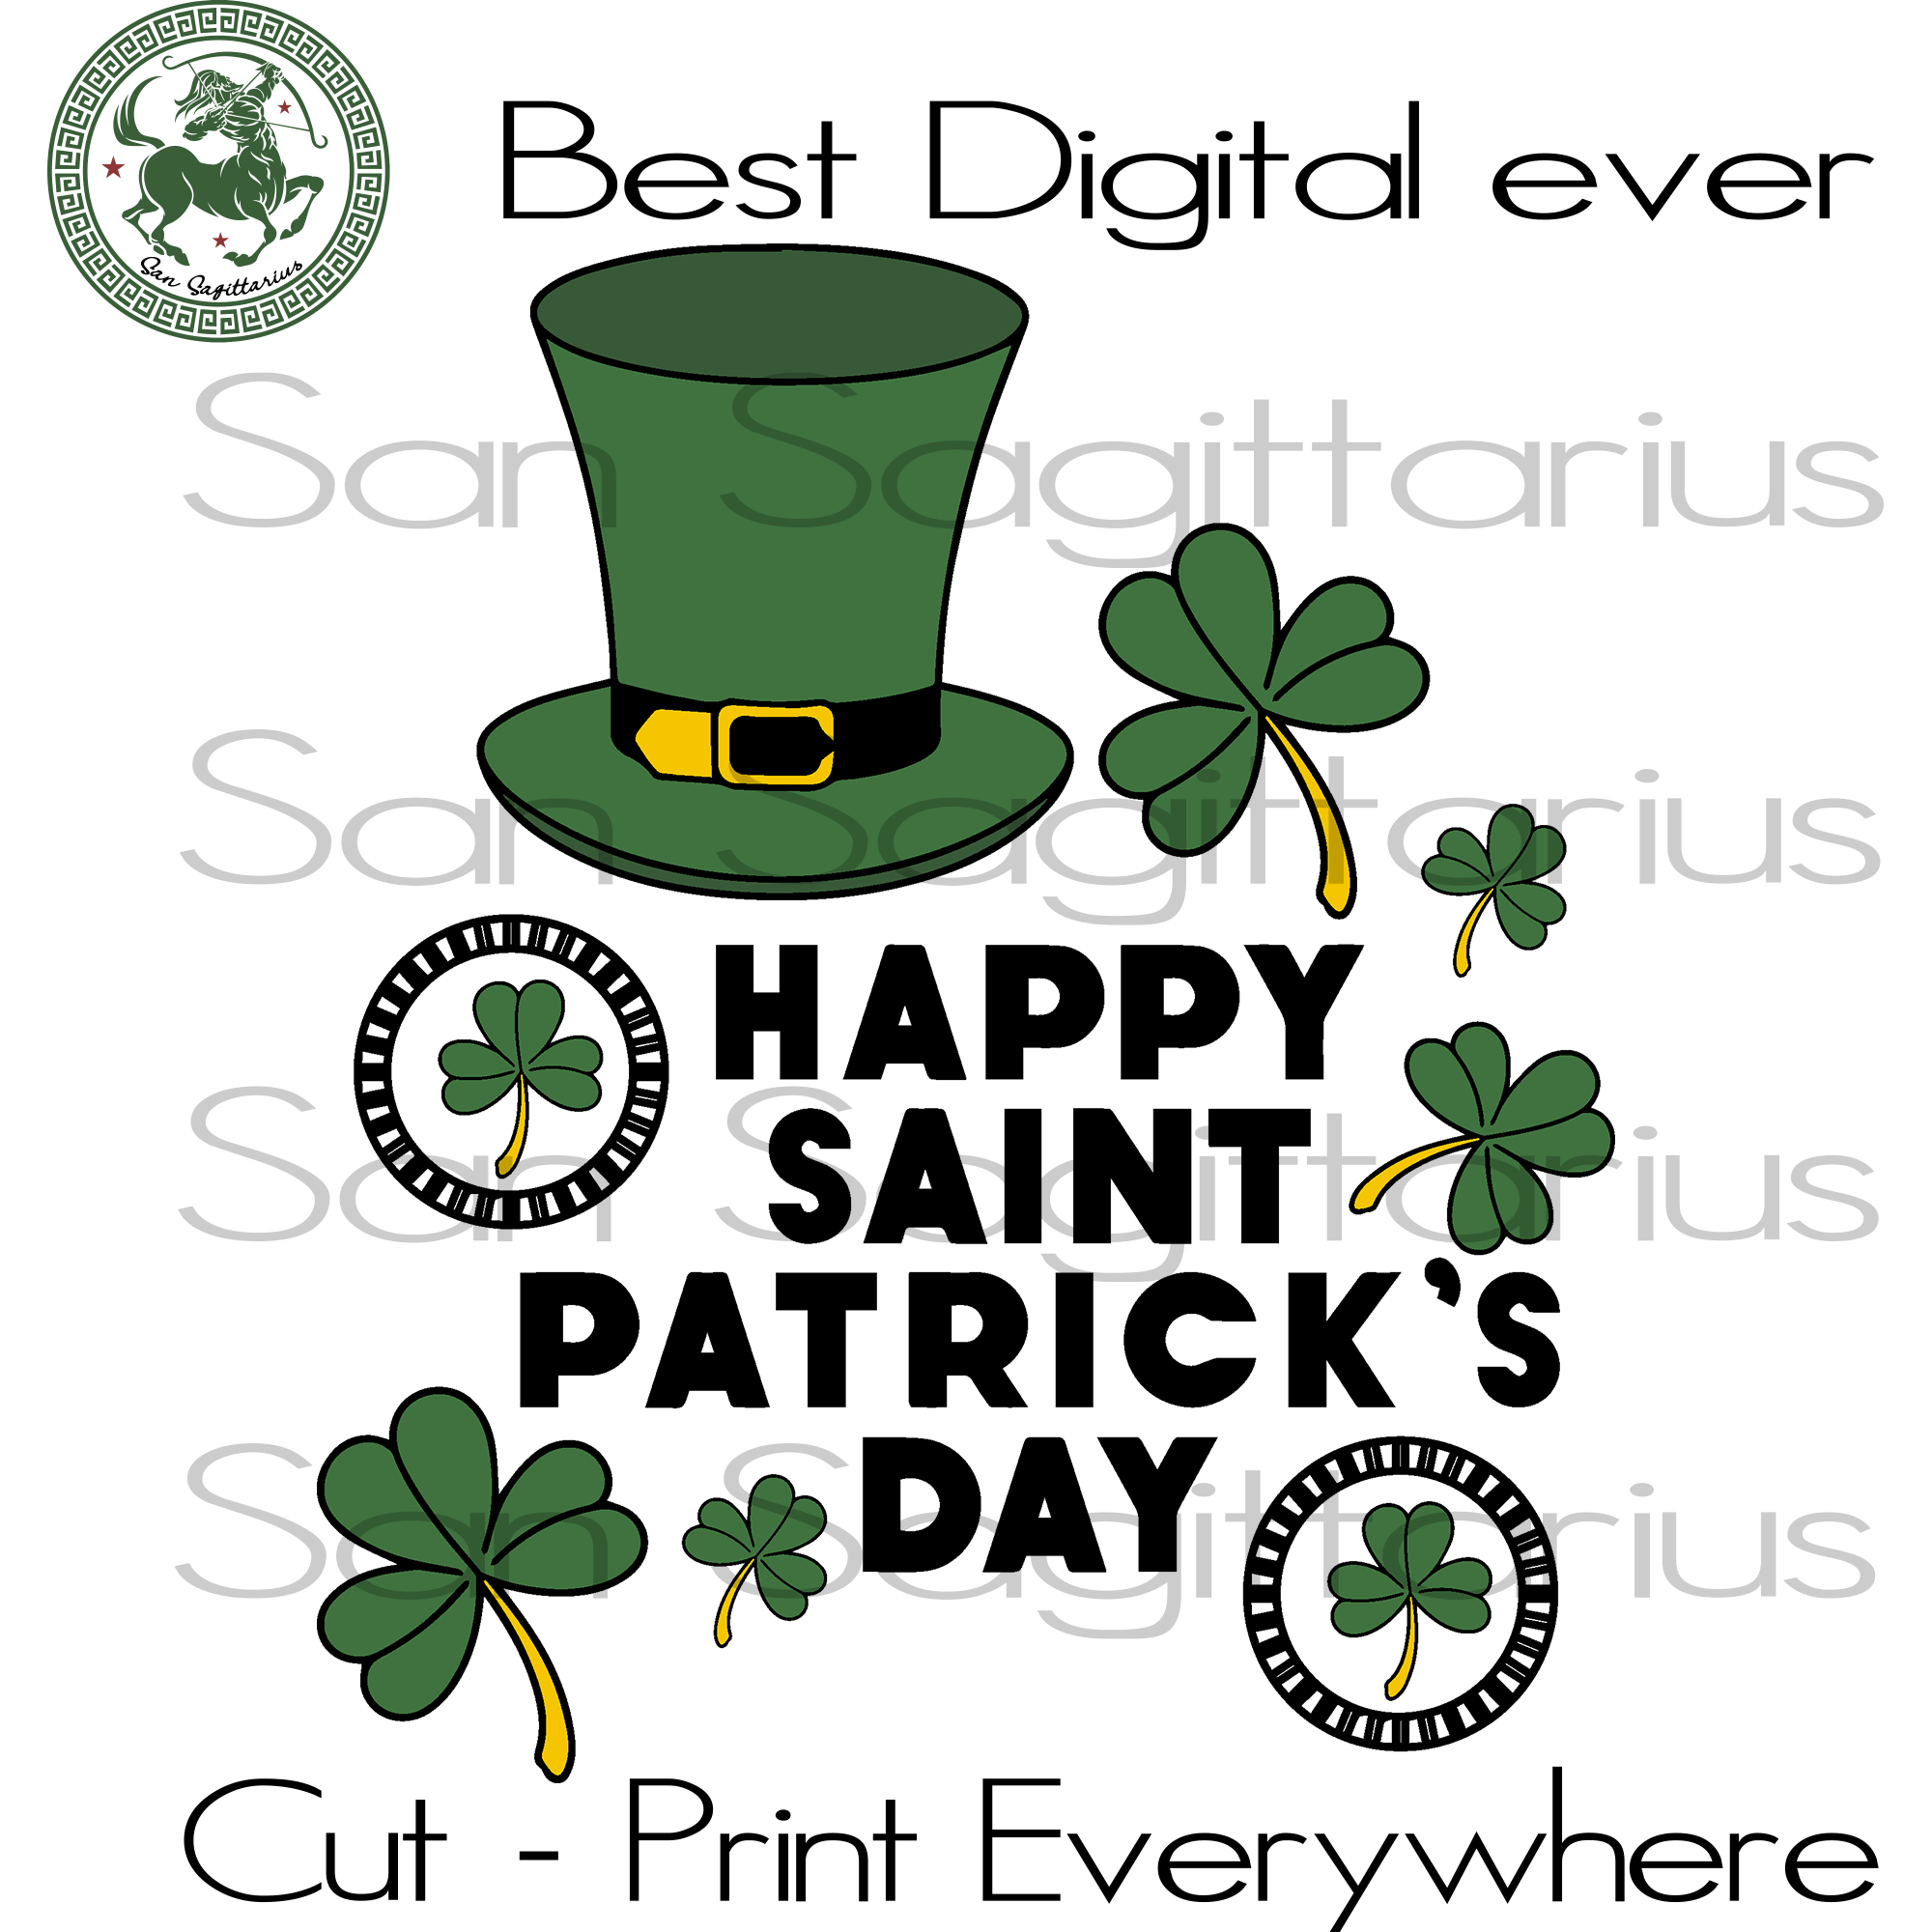 Happy Patrick's Day, Three Leaves Clover, Shenanigans Svg, Drinking Team, Beer Wine SVG Files For Cricut Silhouette Instant Download | San Sagittarius